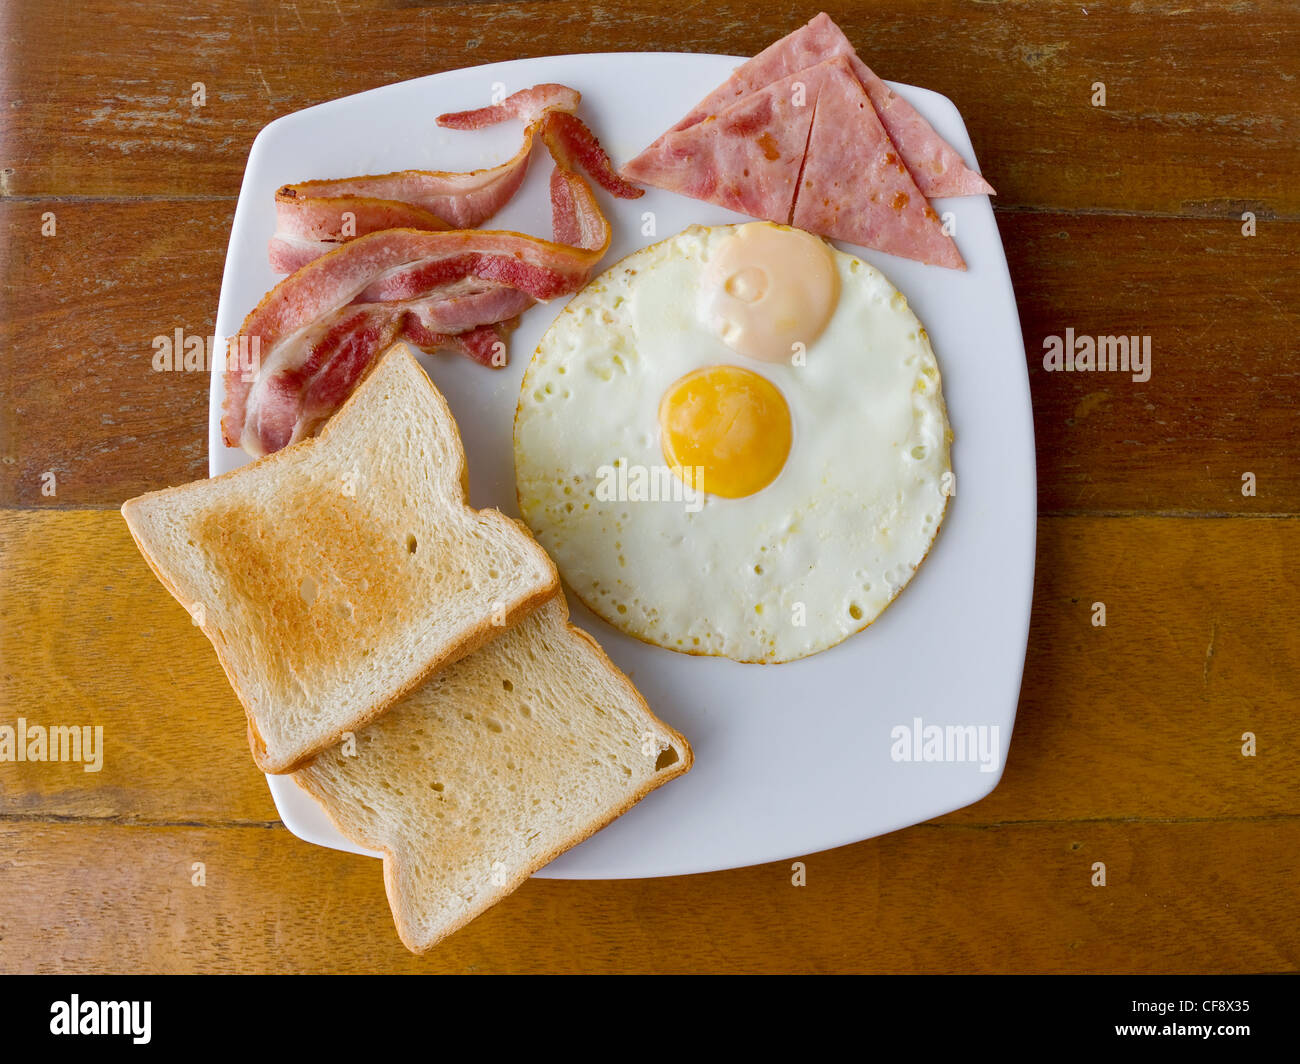 scrambled eggs with bacon and toast on white plate on the table - Stock Image